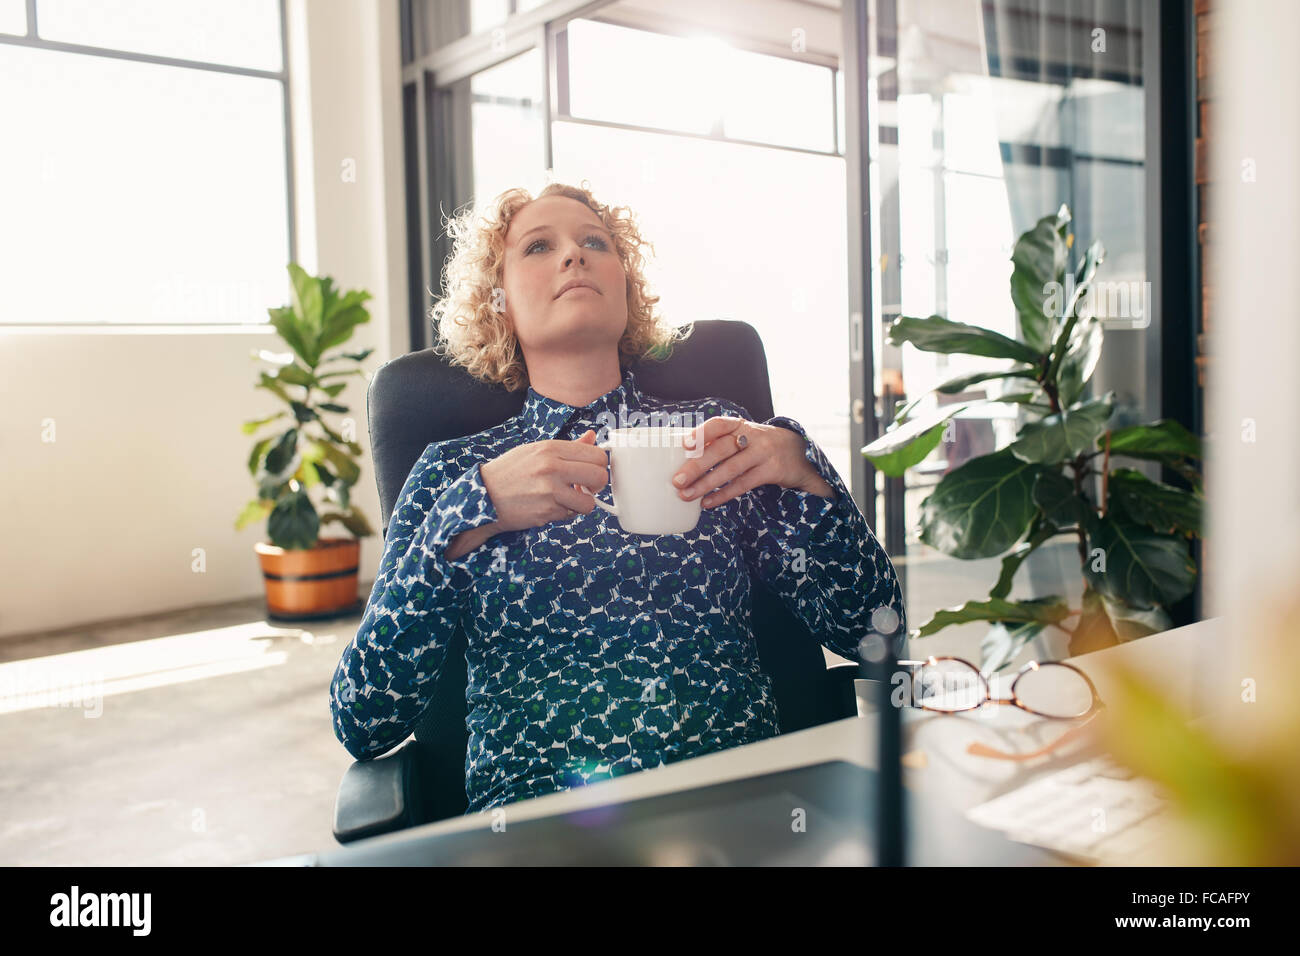 Businesswoman sitting at her desk in office with a cup of coffee looking away and thinking. - Stock Image